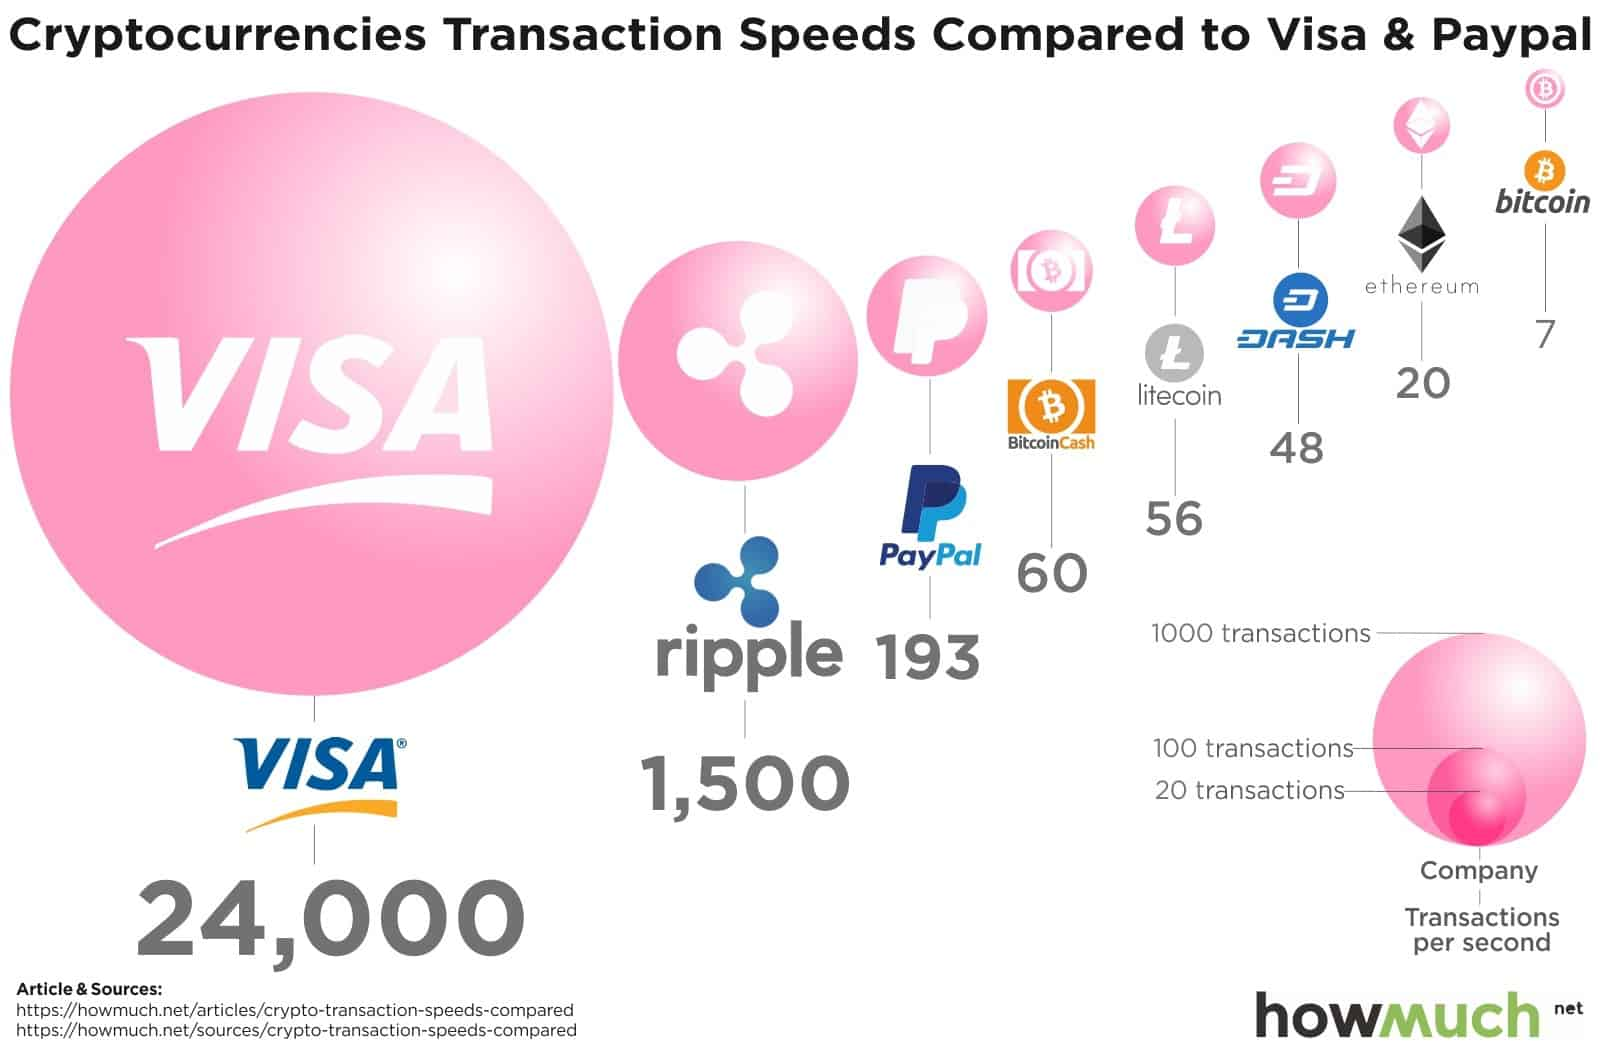 Cryptocurrency Transaction Speeds Compared